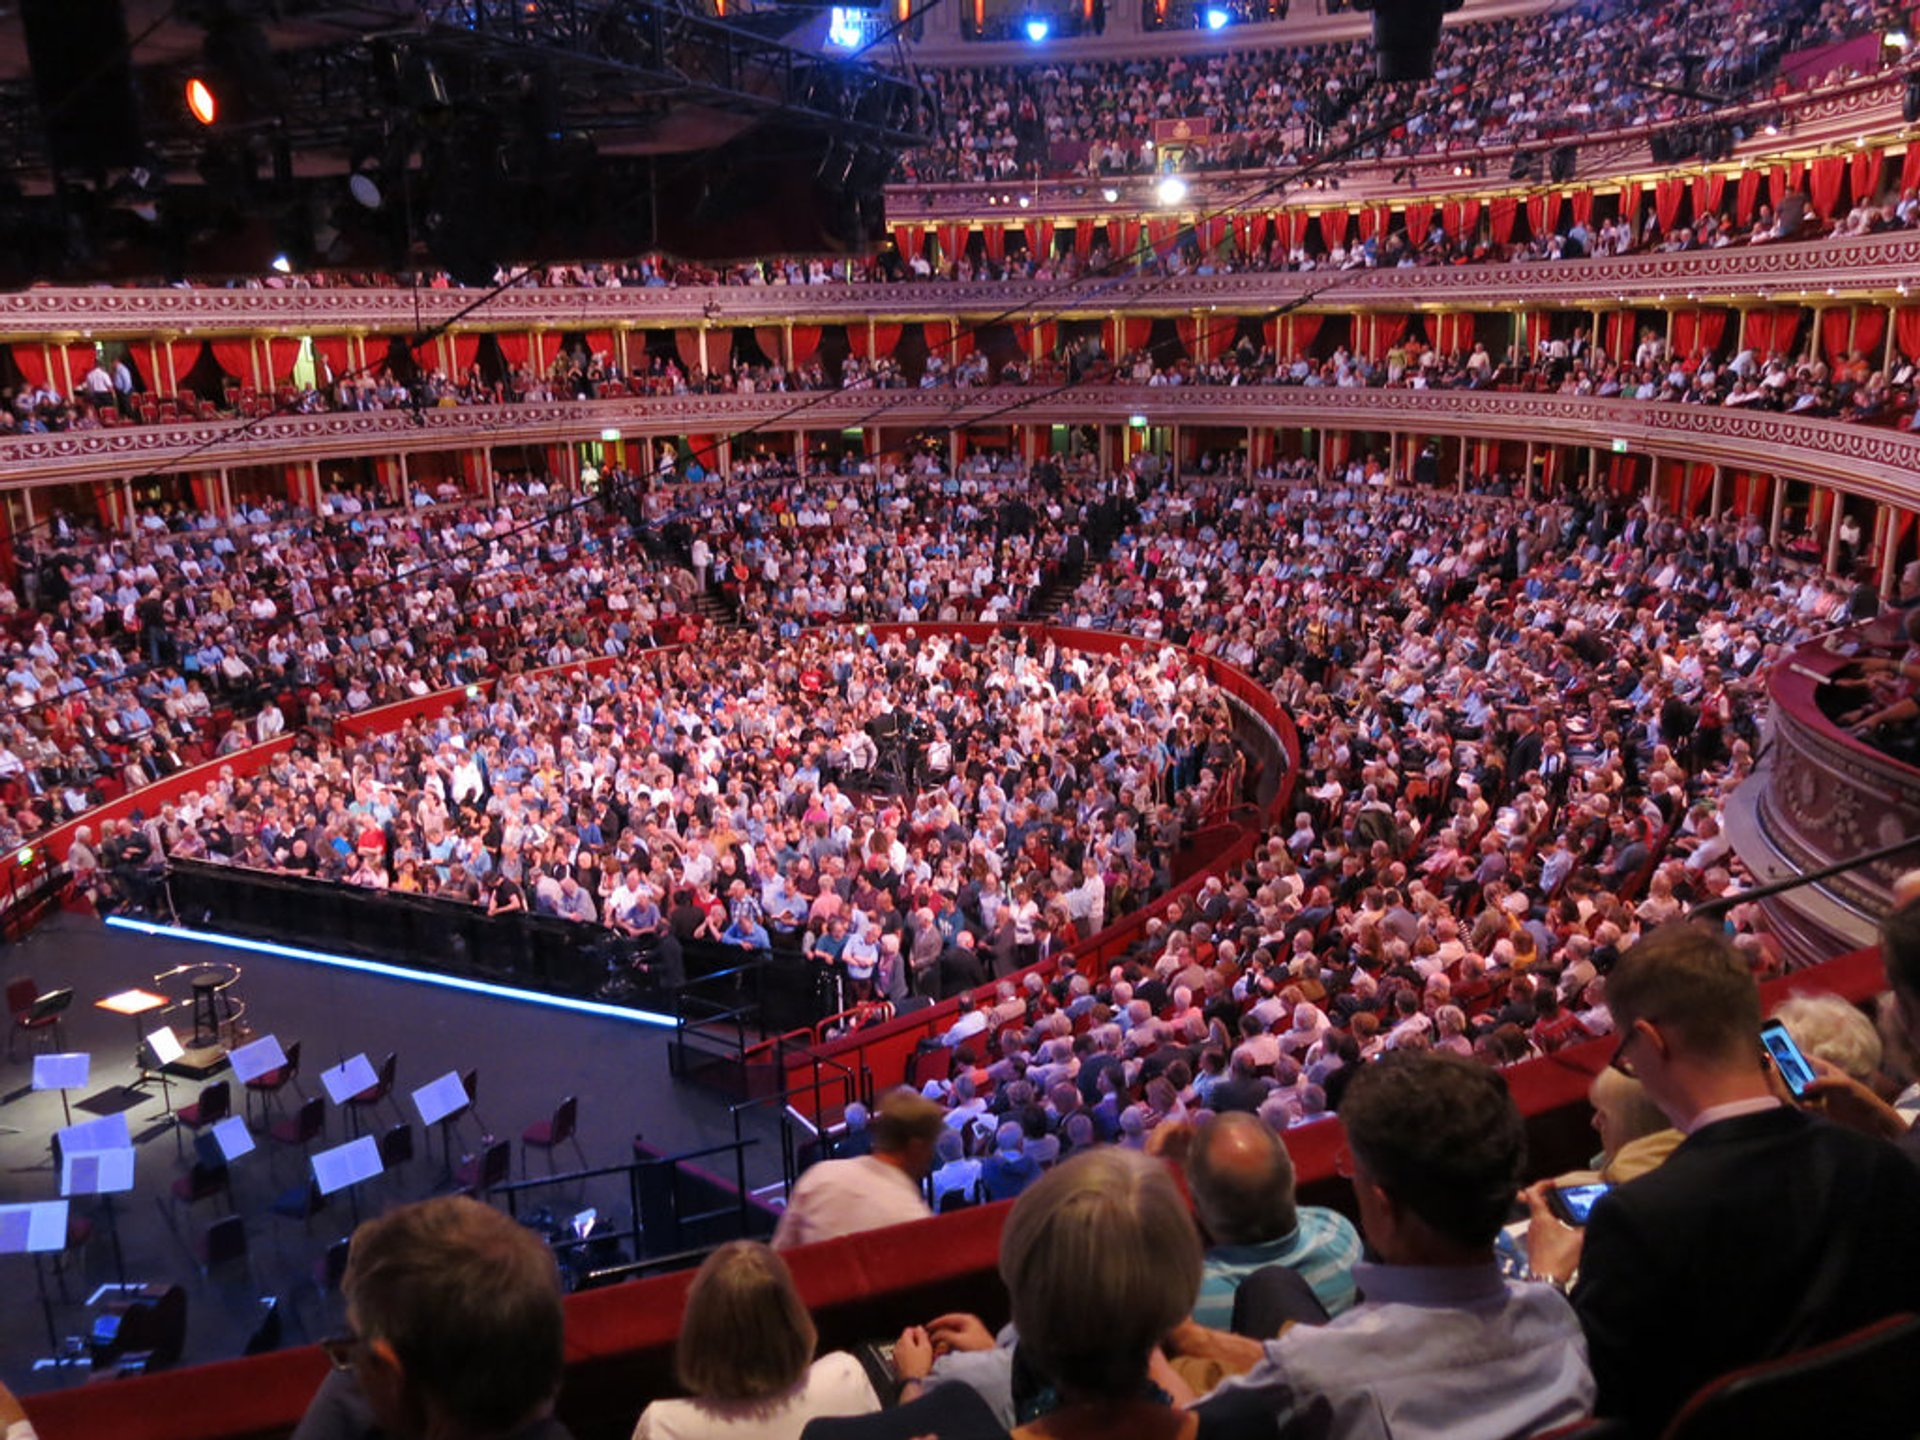 BBC Proms in London - Best Season 2019